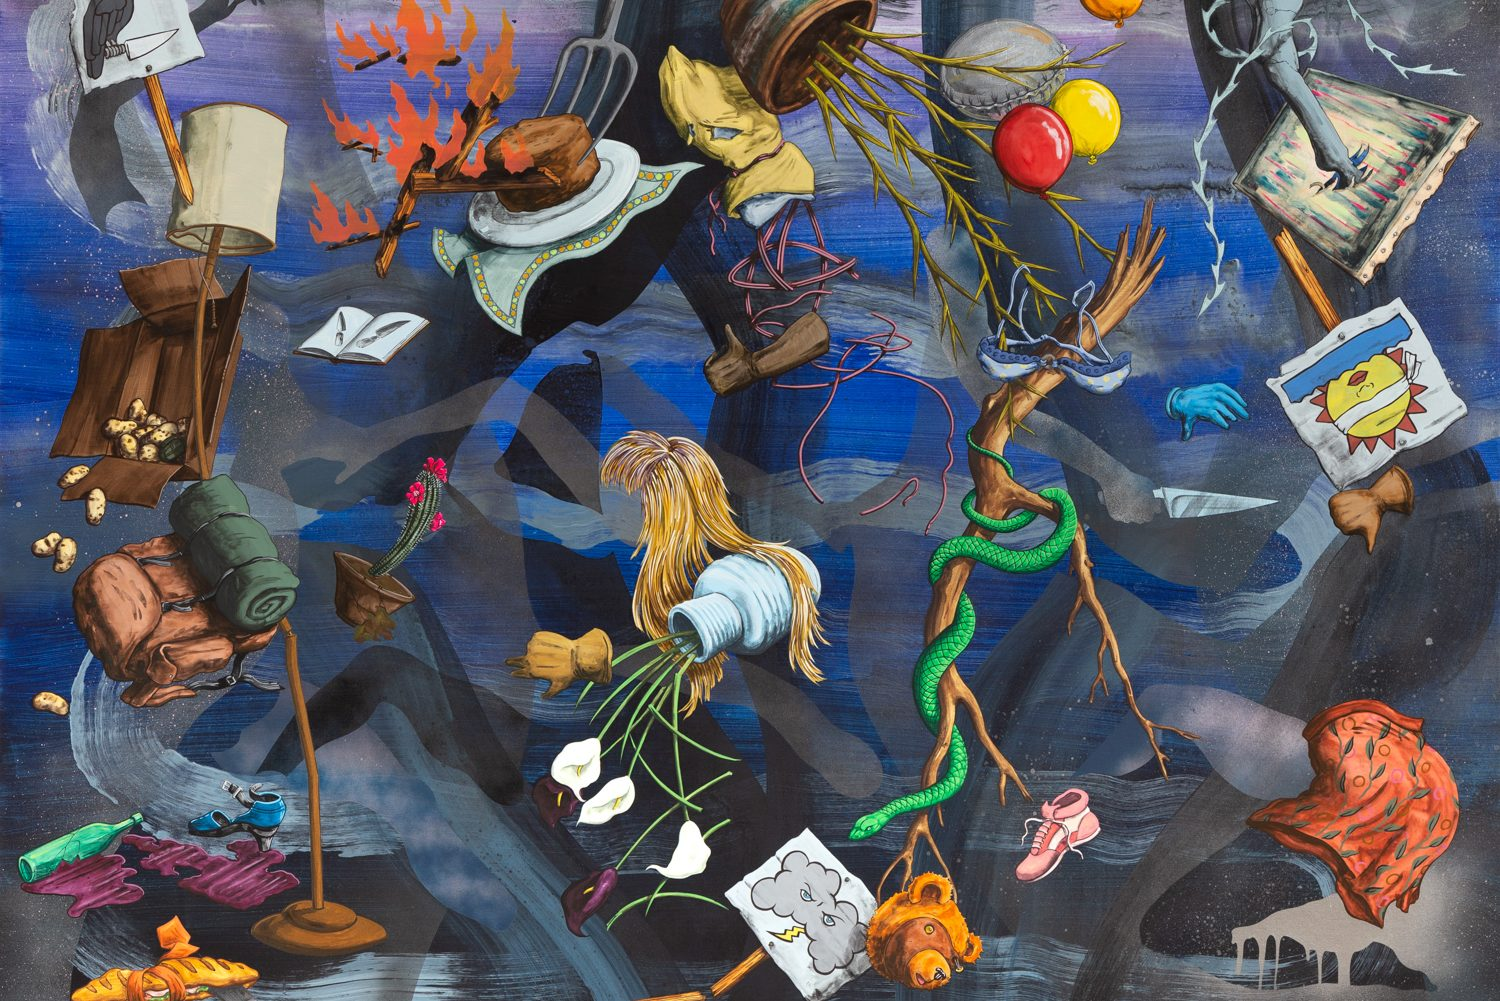 In a flurry of motion and surrealist animation, this painting captures multiple dizzying happenings at once—potatoes tumbling out of a cardboard box, pink-colored wine spilling out of a broken bottle, a snake wrapping itself around a tree branch, a pitchfork impaling a cake, a wig, a shoe, balloons, so on.